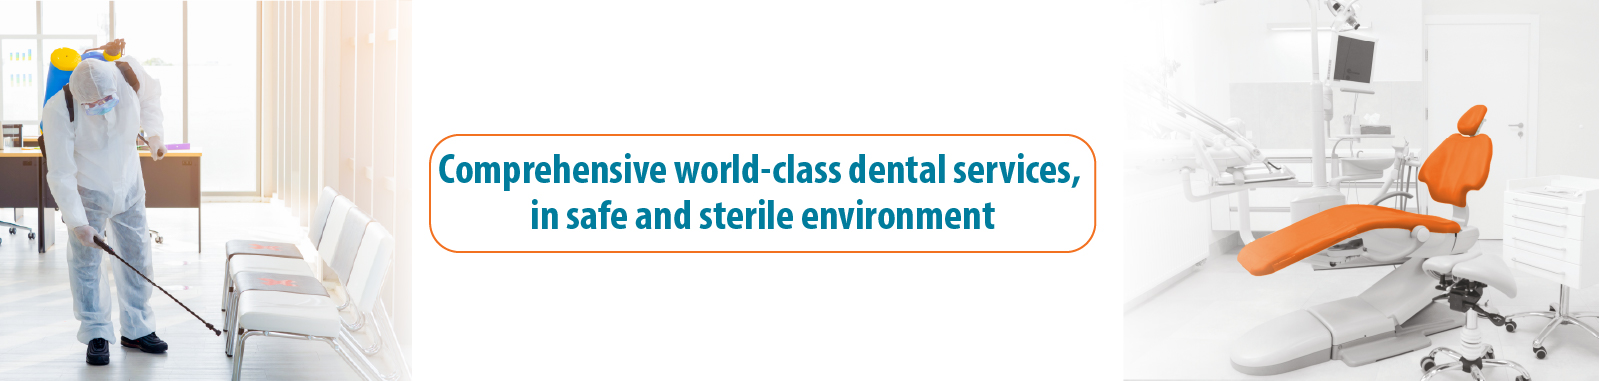 Dental-Web-banner-3